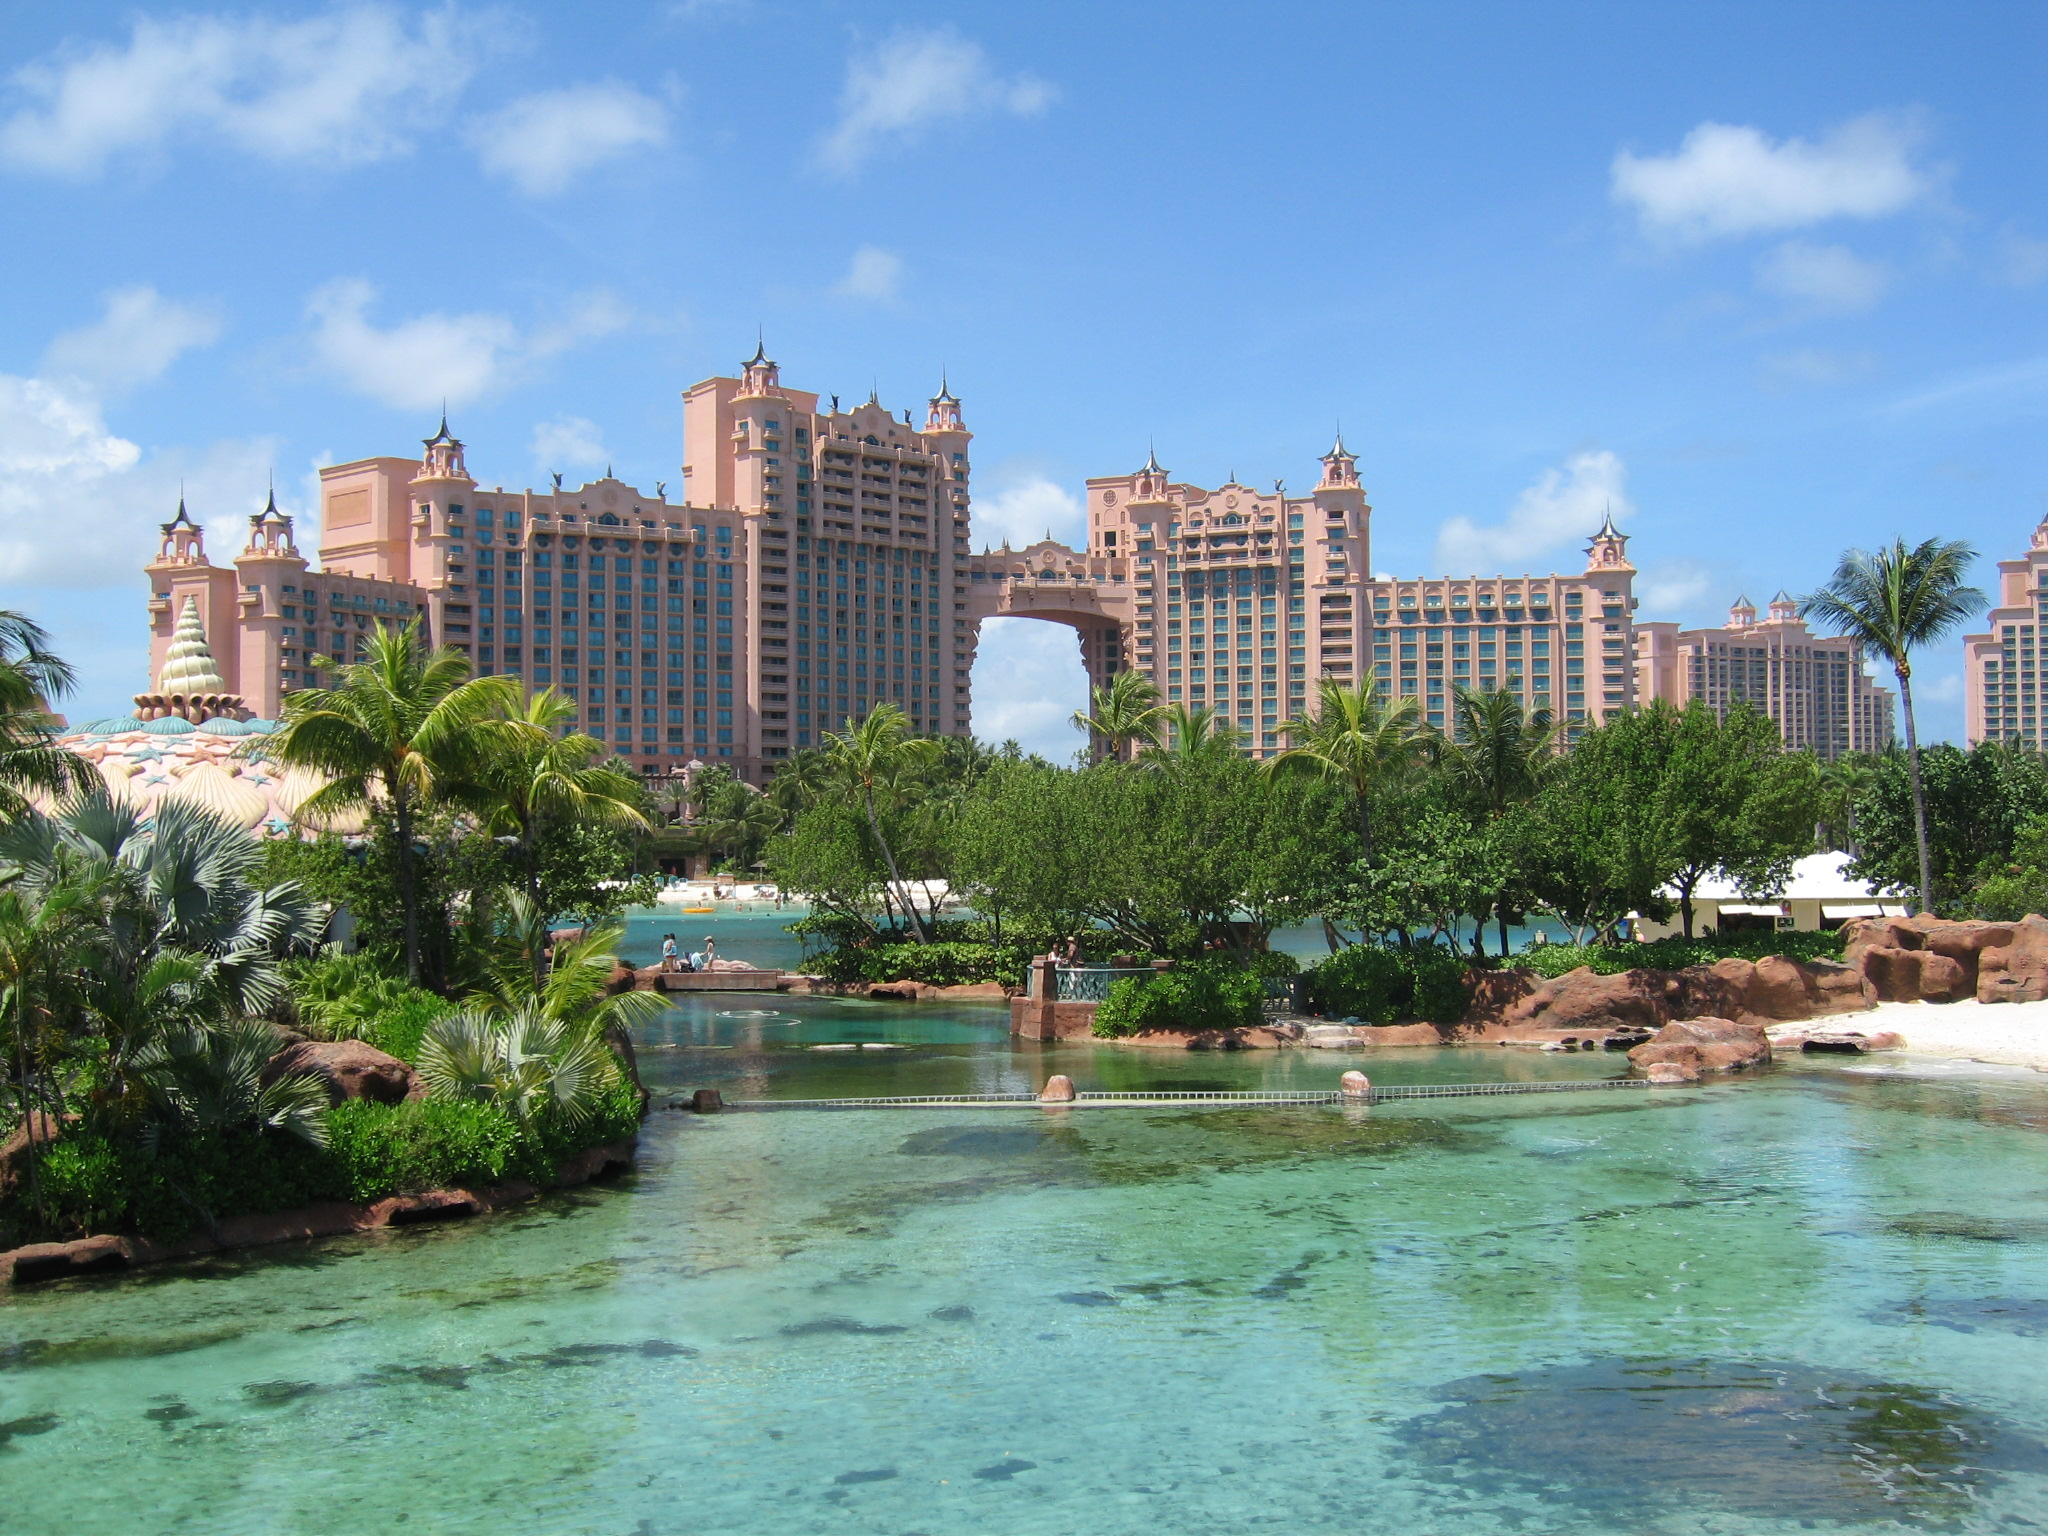 The Atlantis Bahamas Bridge Room Rate